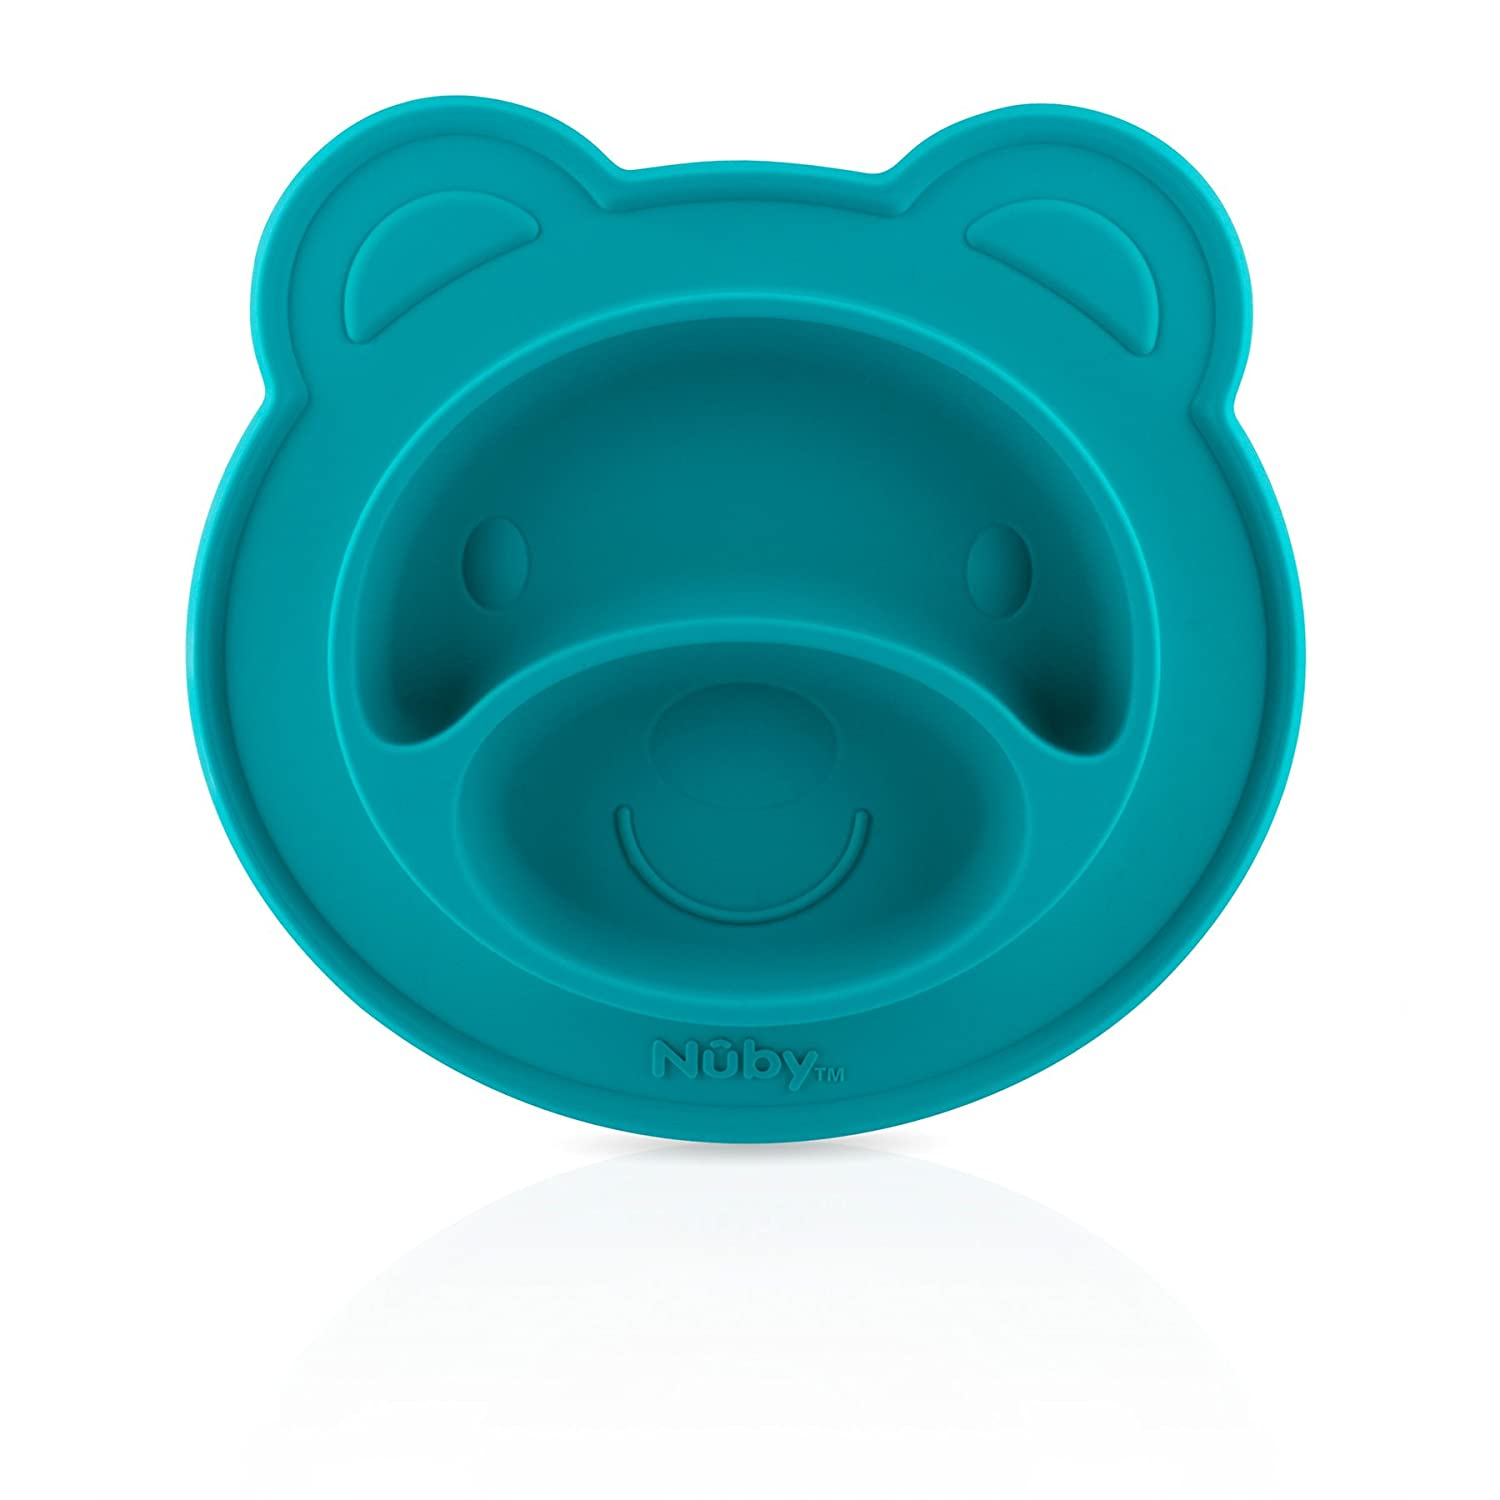 Nuby 537076BL Sure Grip Silicone Miracle Mat Section Bear Plate, Blue